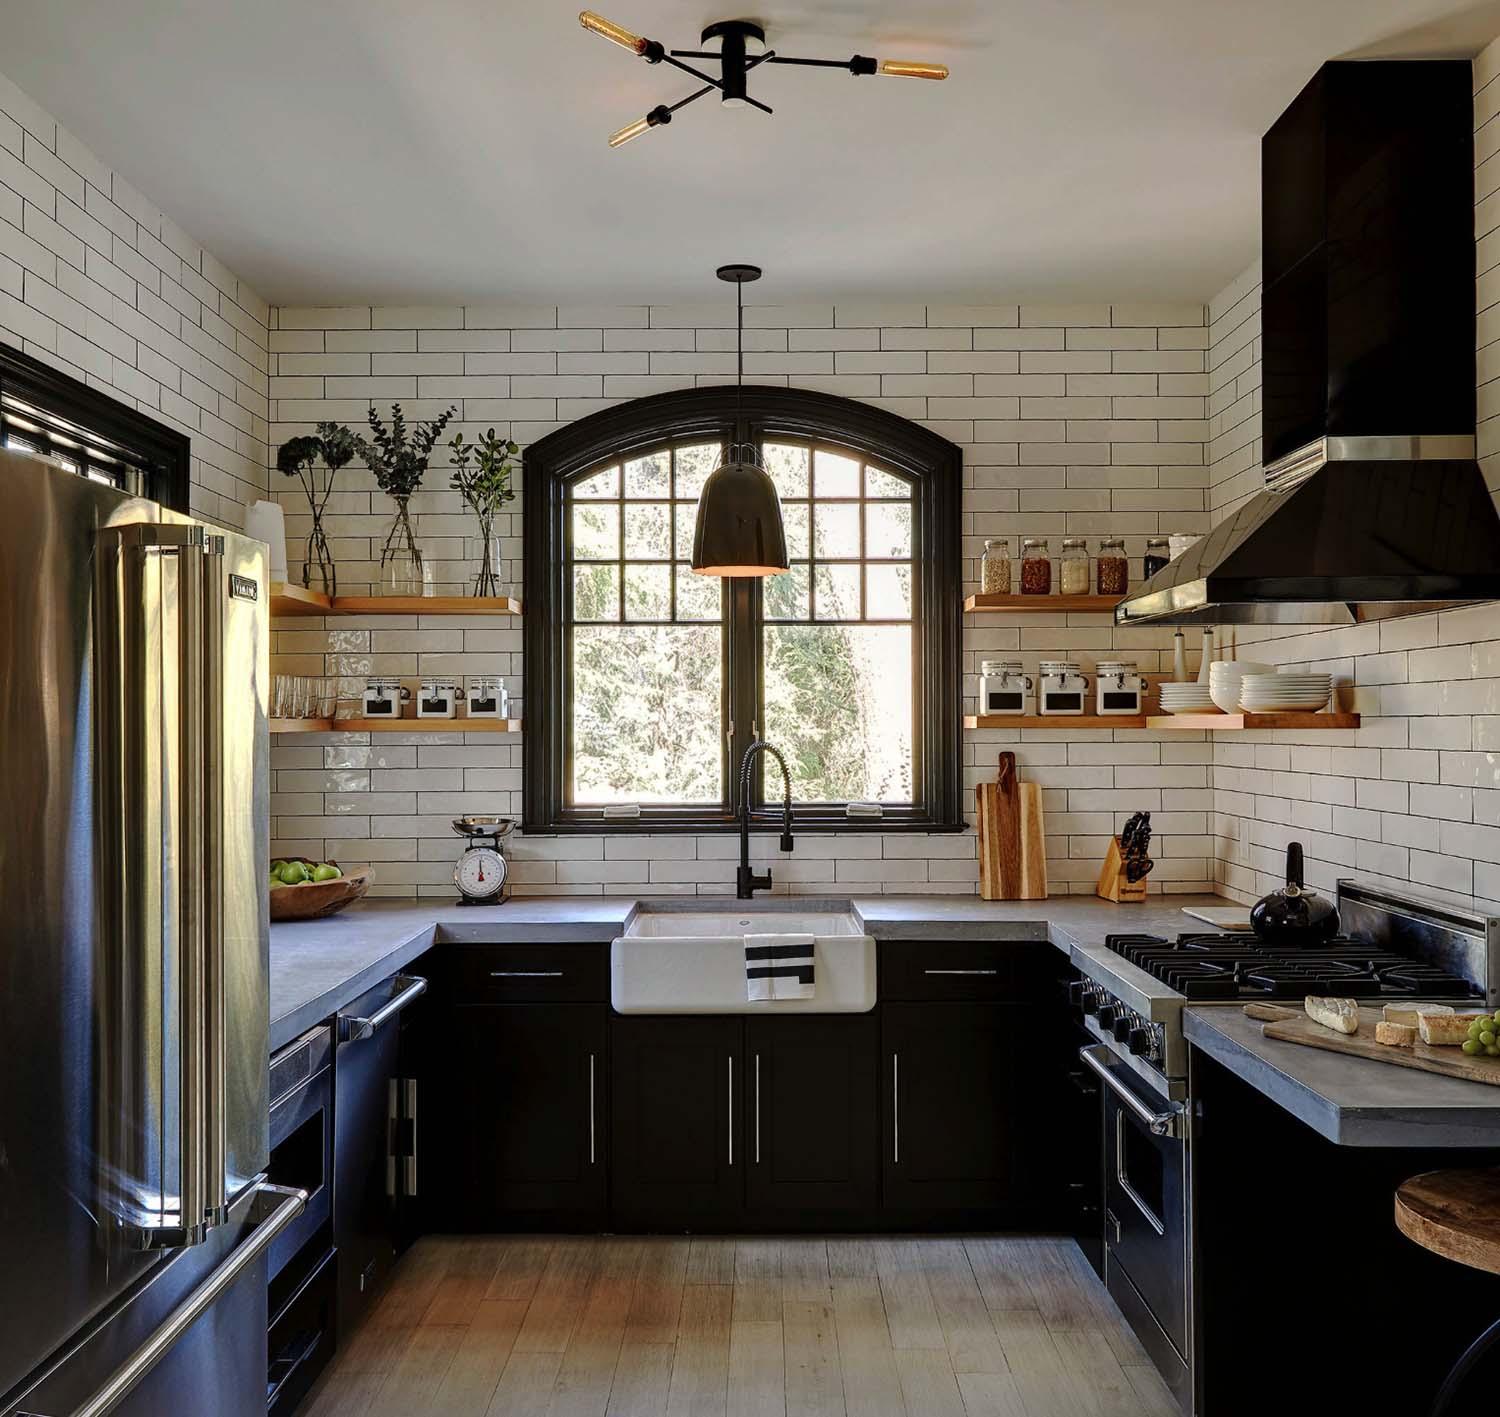 Modern industrial farmhouse kitchen with black cabinets, silver hardware, white subway tile backsplash and open shelving with cement countertops